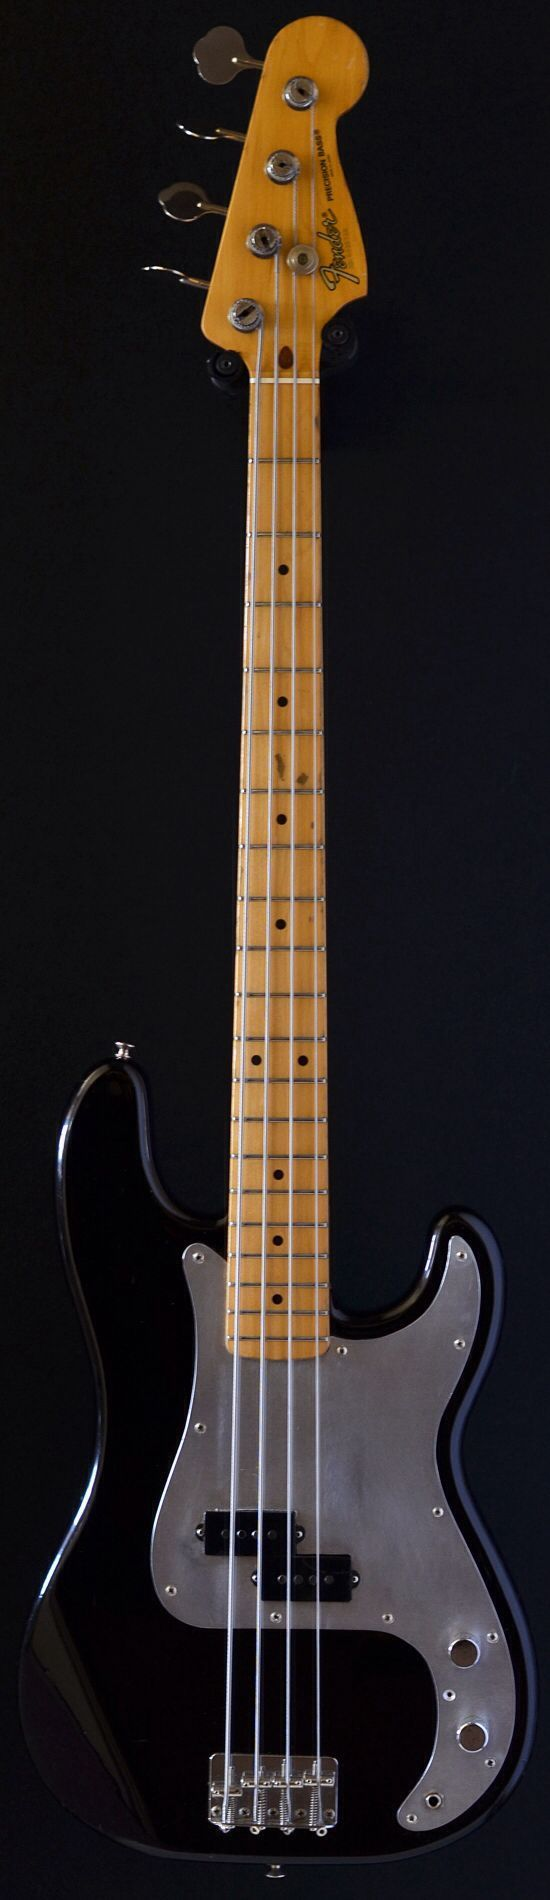 Fender made in Japan Precision bass #fenderguitars Fender made in Japan Precision bass #fenderguitars